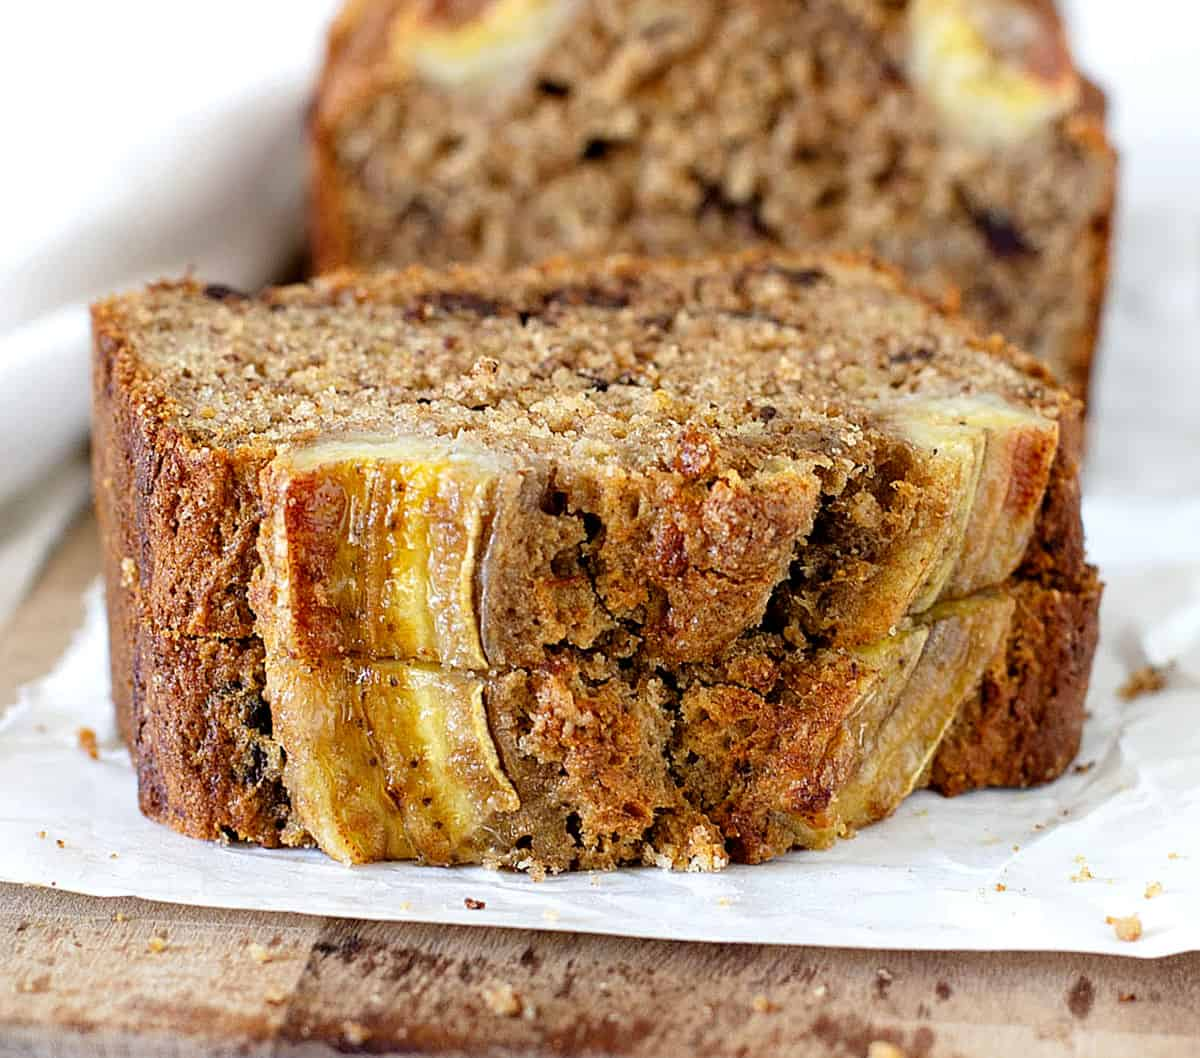 Two stacked slices of banana bread on white paper